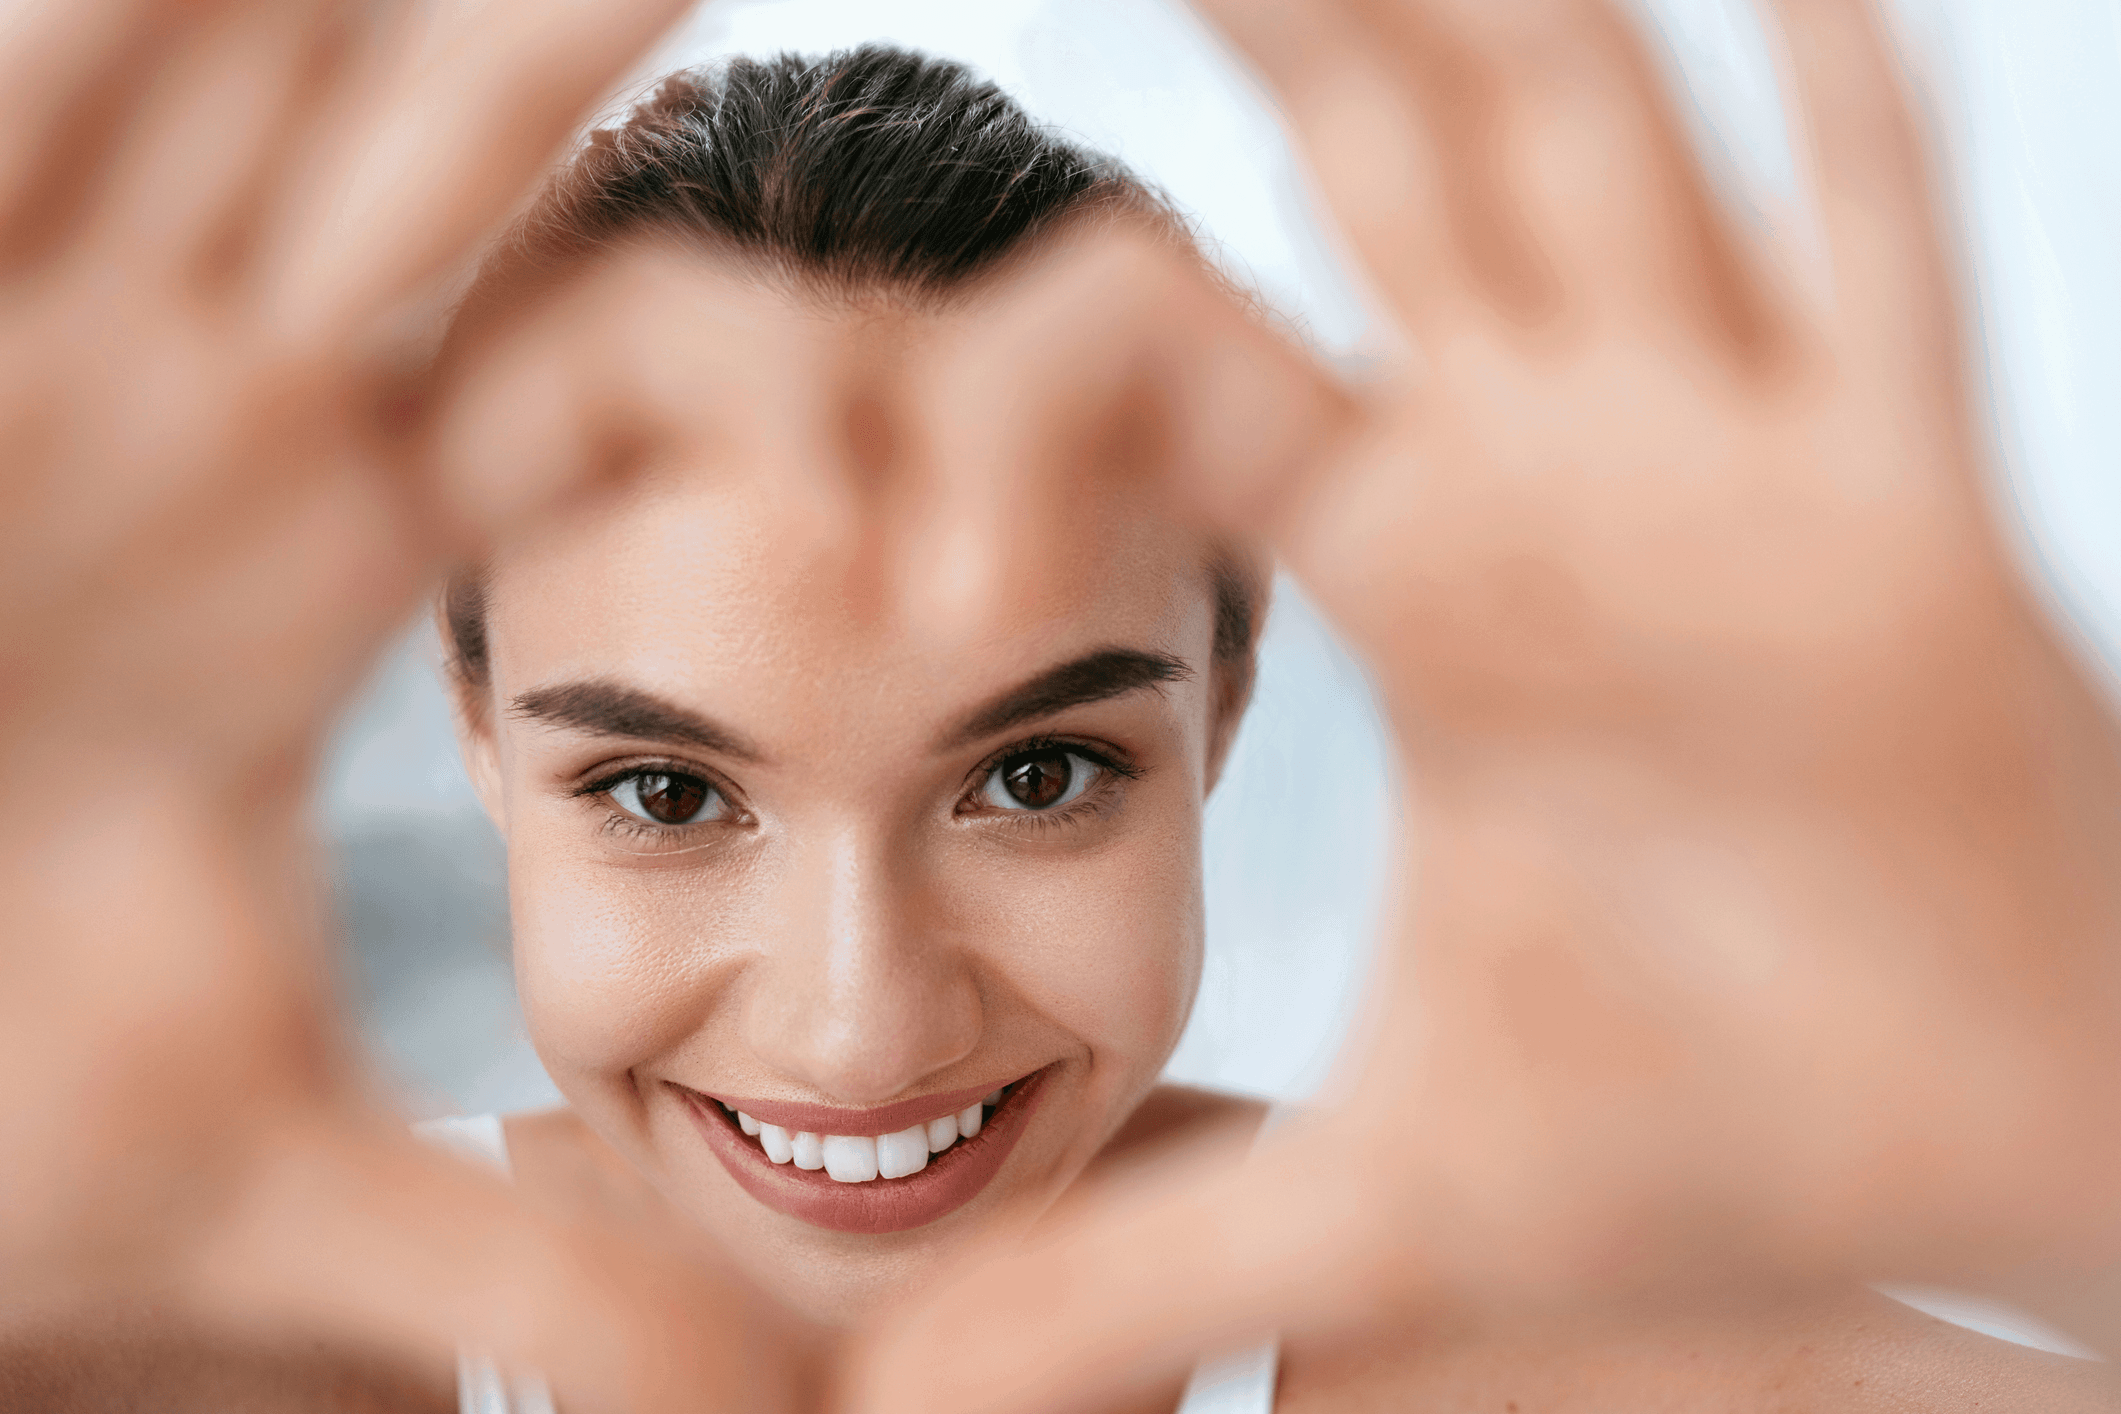 Nano Laser Peel vs. BBL: Which Is Best for Your Skin?